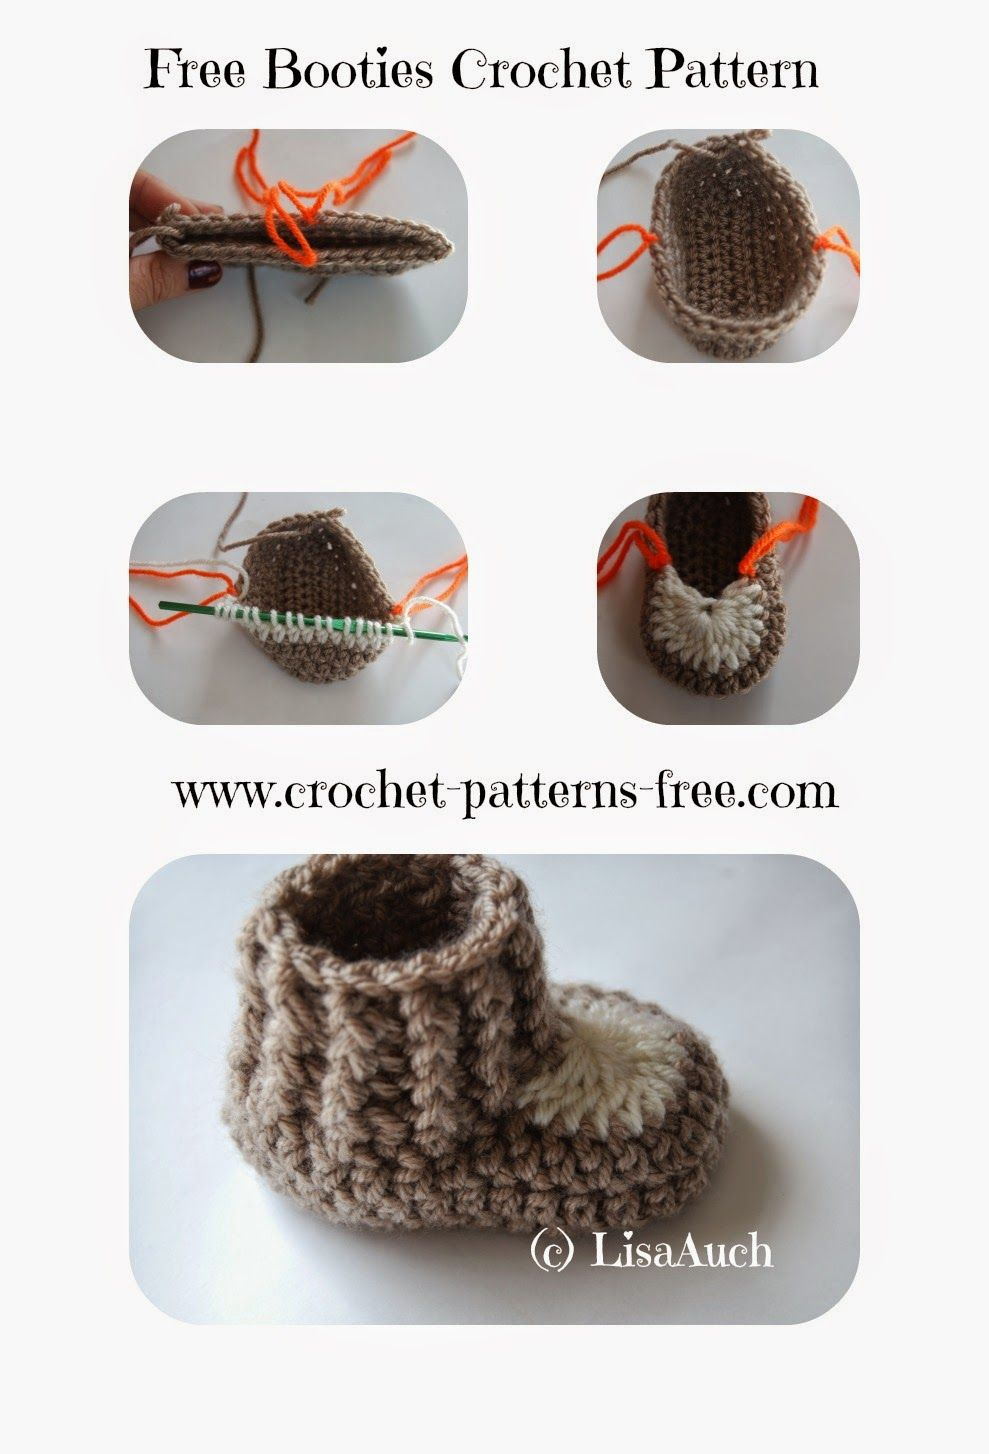 10 minute Easy Crochet Booties Pattern | Crochet baby 2 :D ...